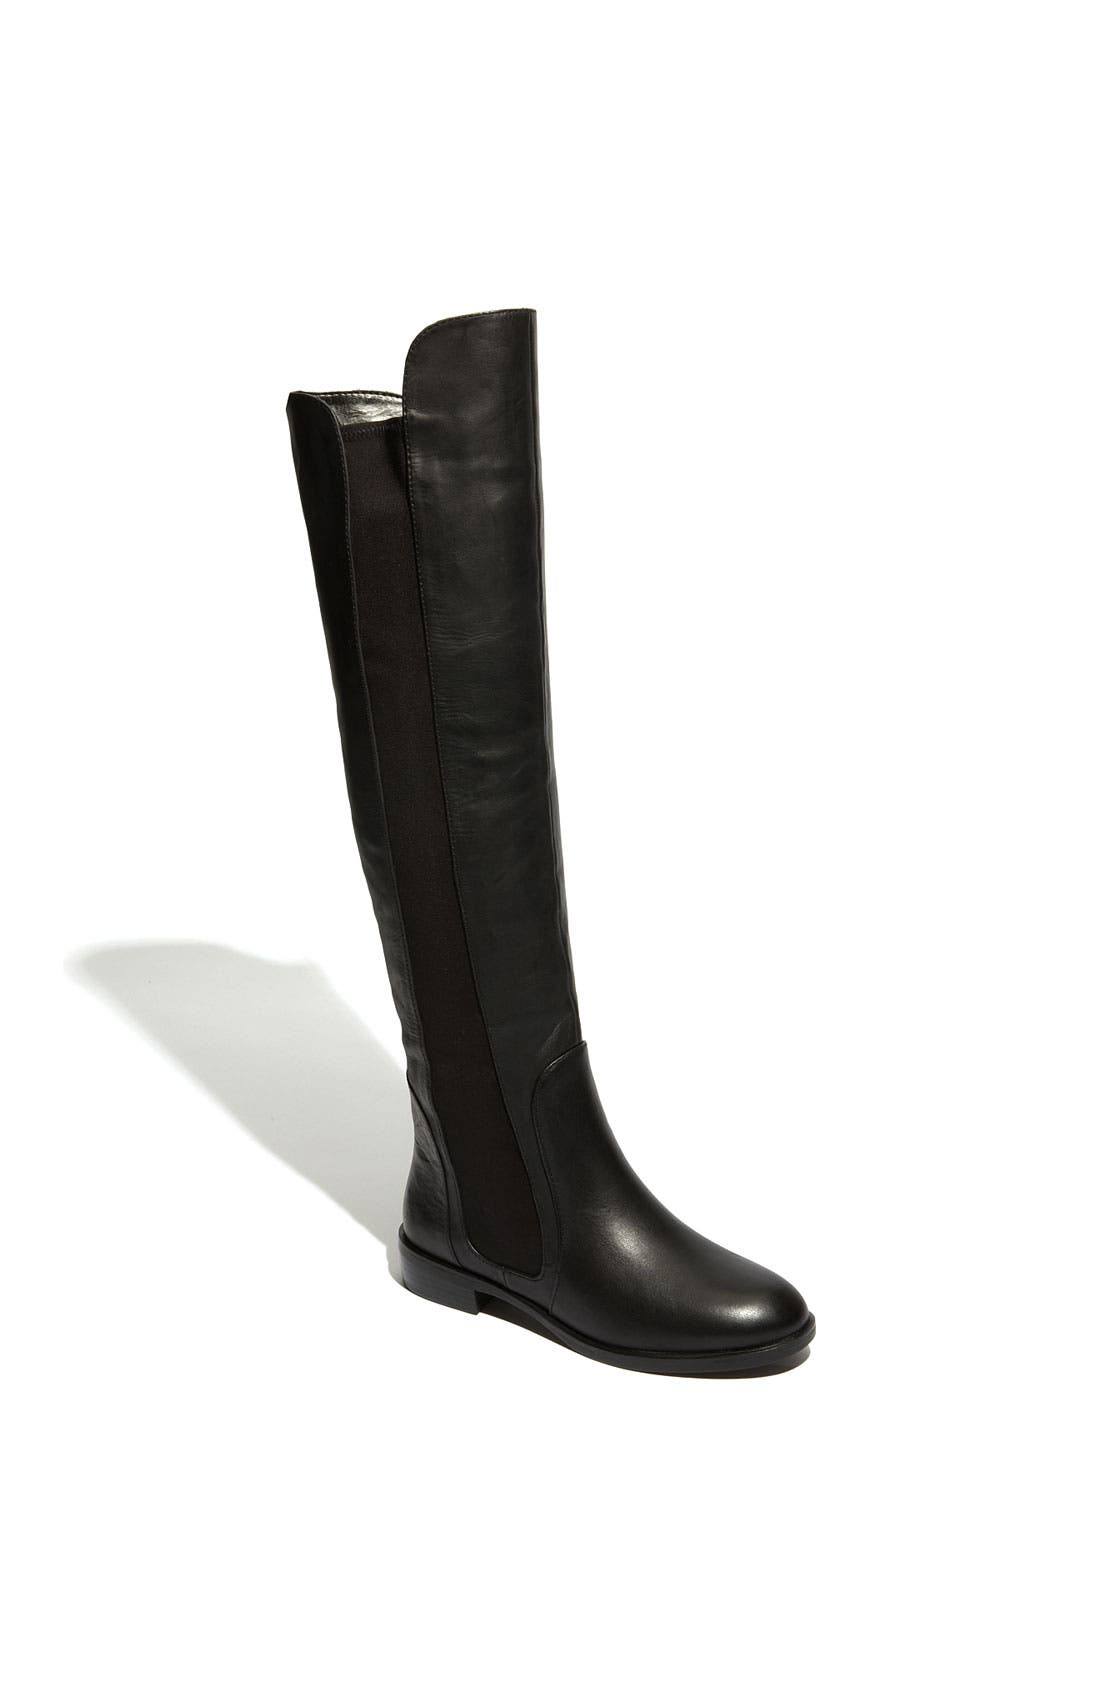 Alternate Image 1 Selected - REPORT 'Basta' Over the Knee Boot